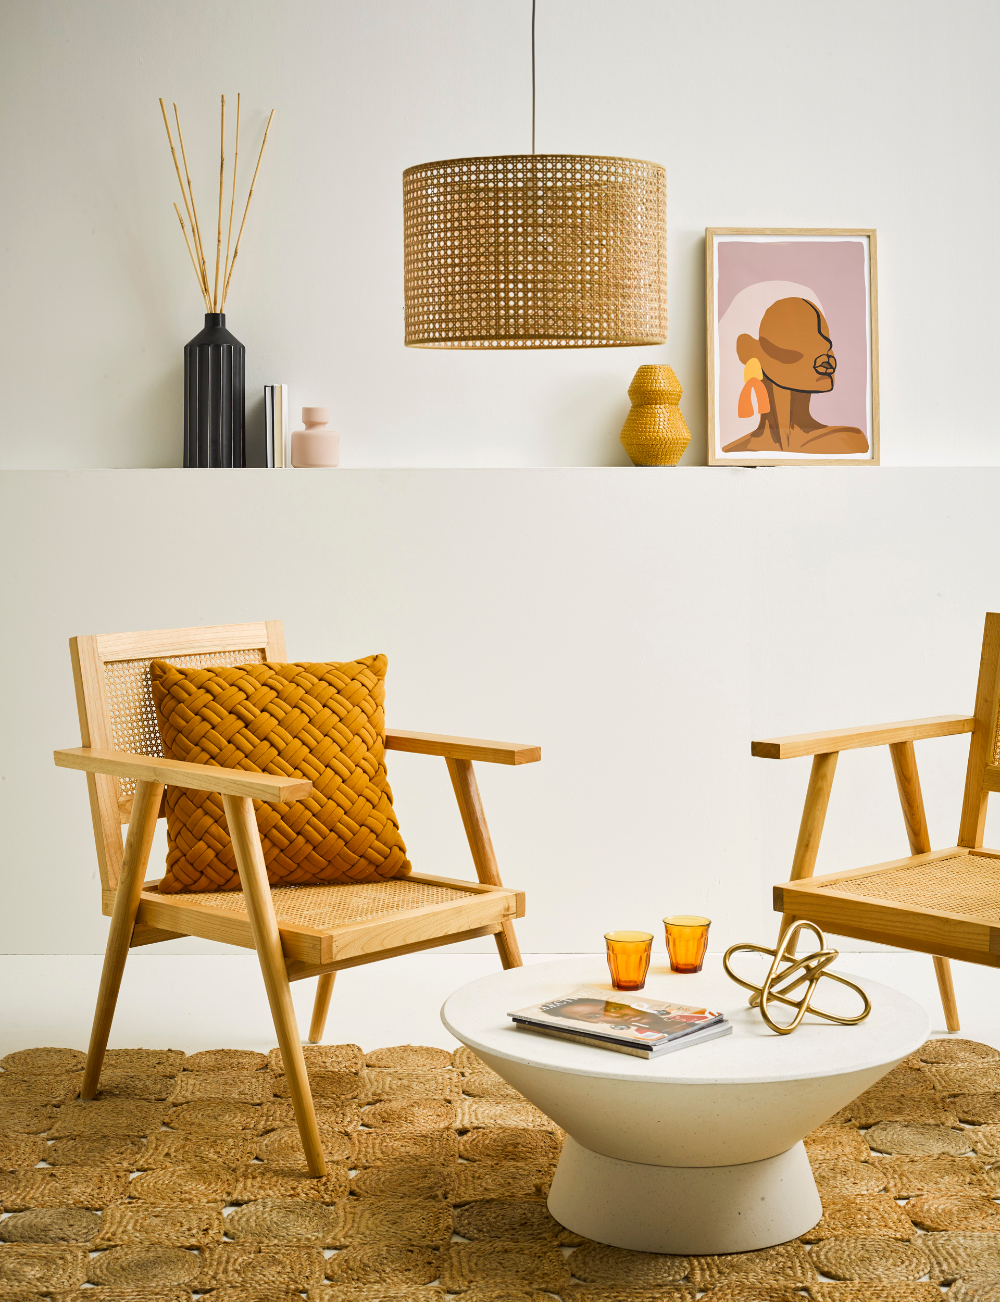 2 ways to give cane and rattan furniture a modern look in